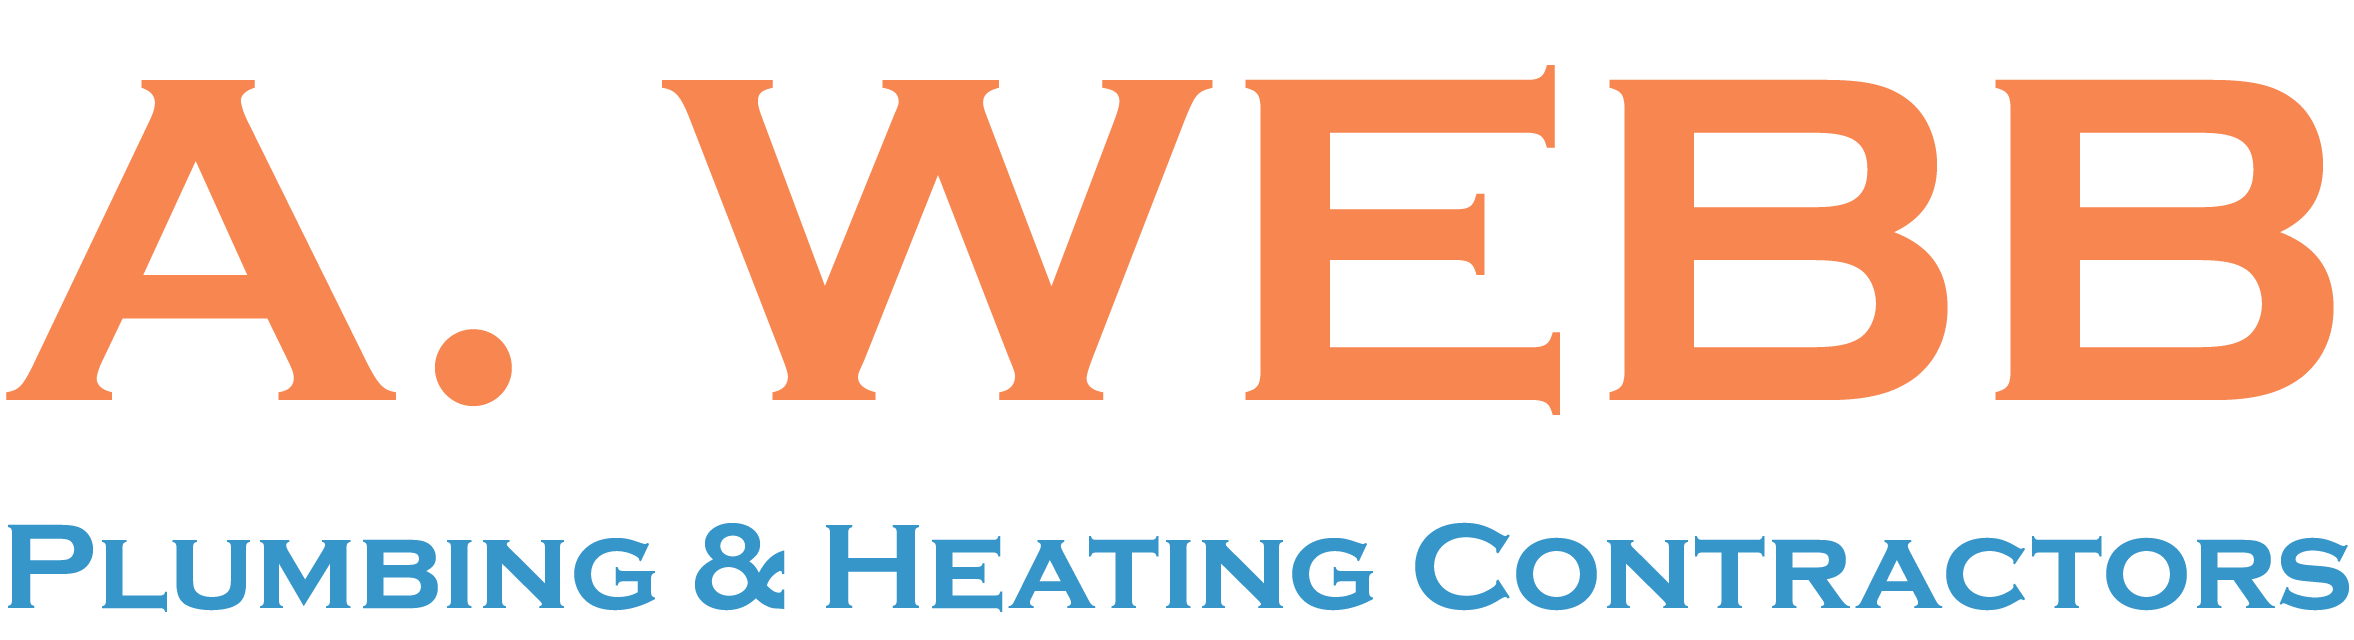 A Webb Plumbing & Heating